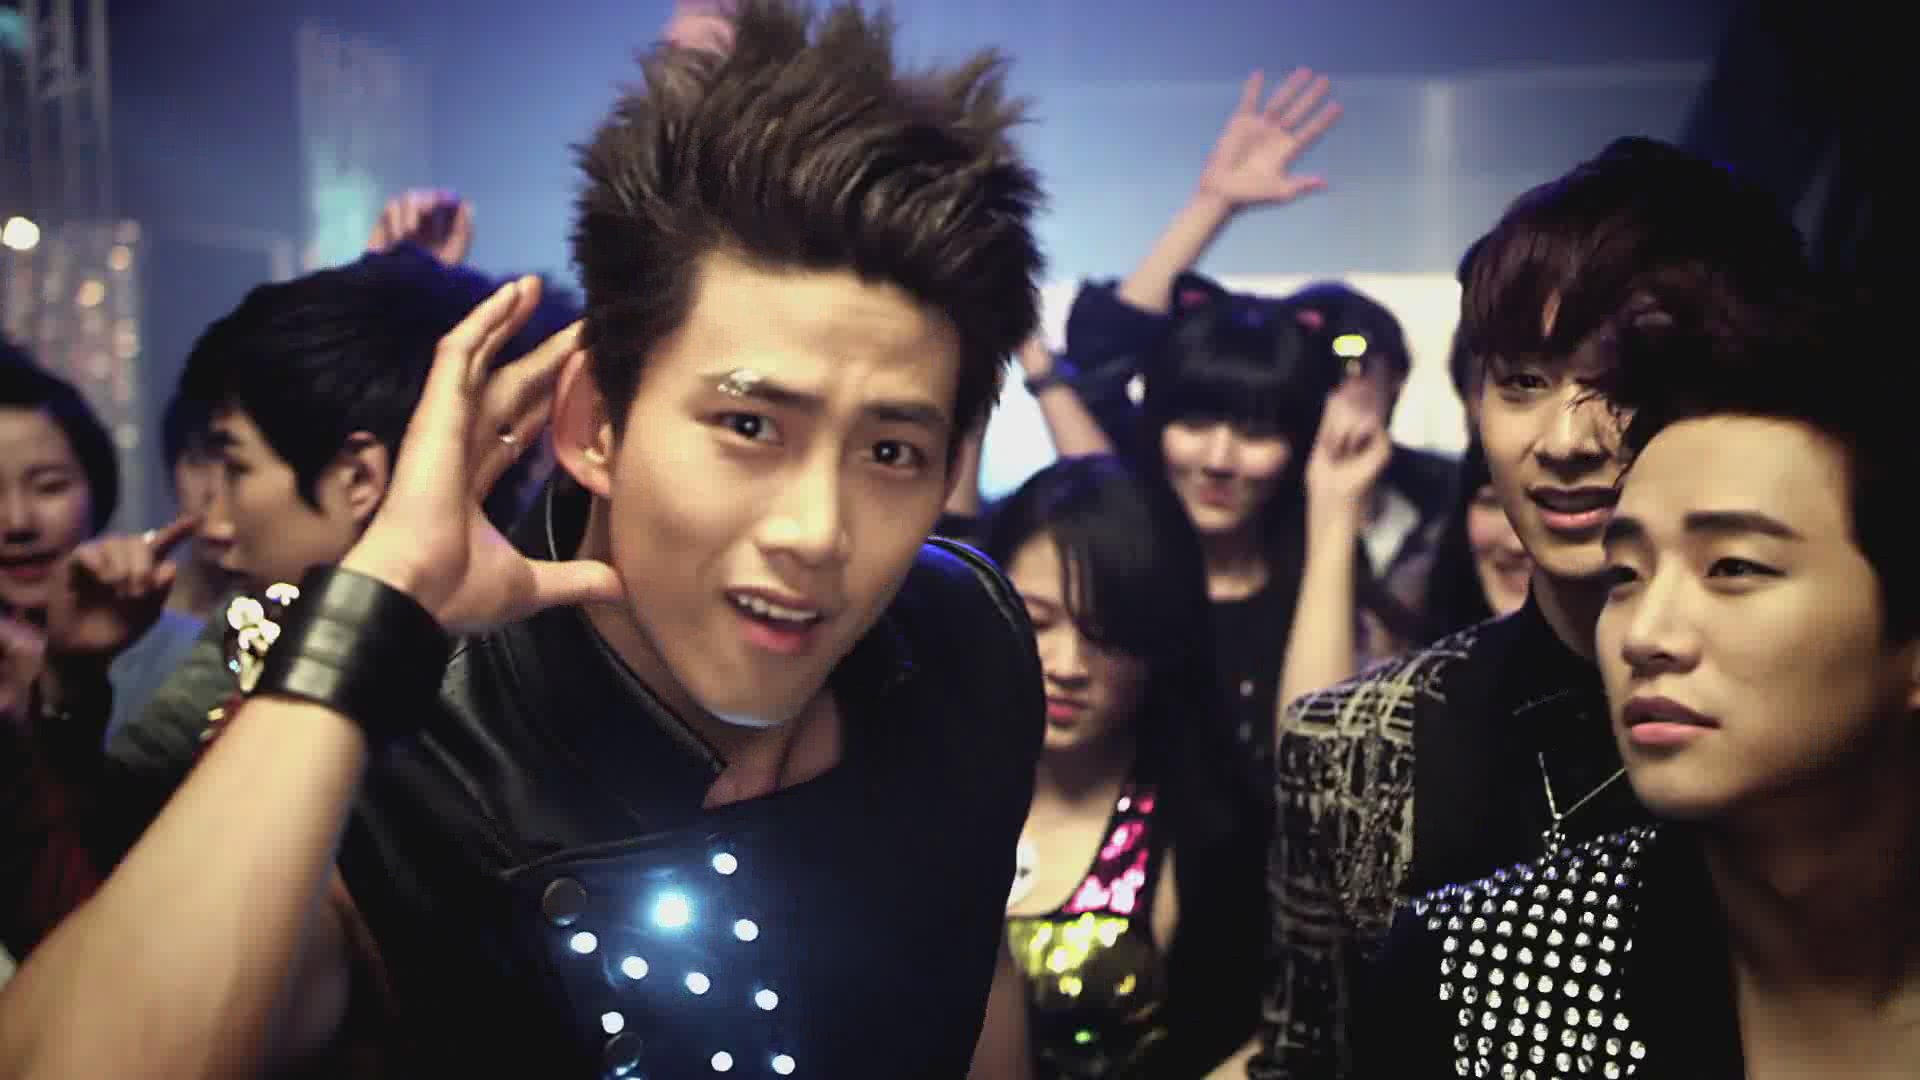 Taecyeon Hands Up MV - taecyeon 2pm Image (27831105) - Fanpop